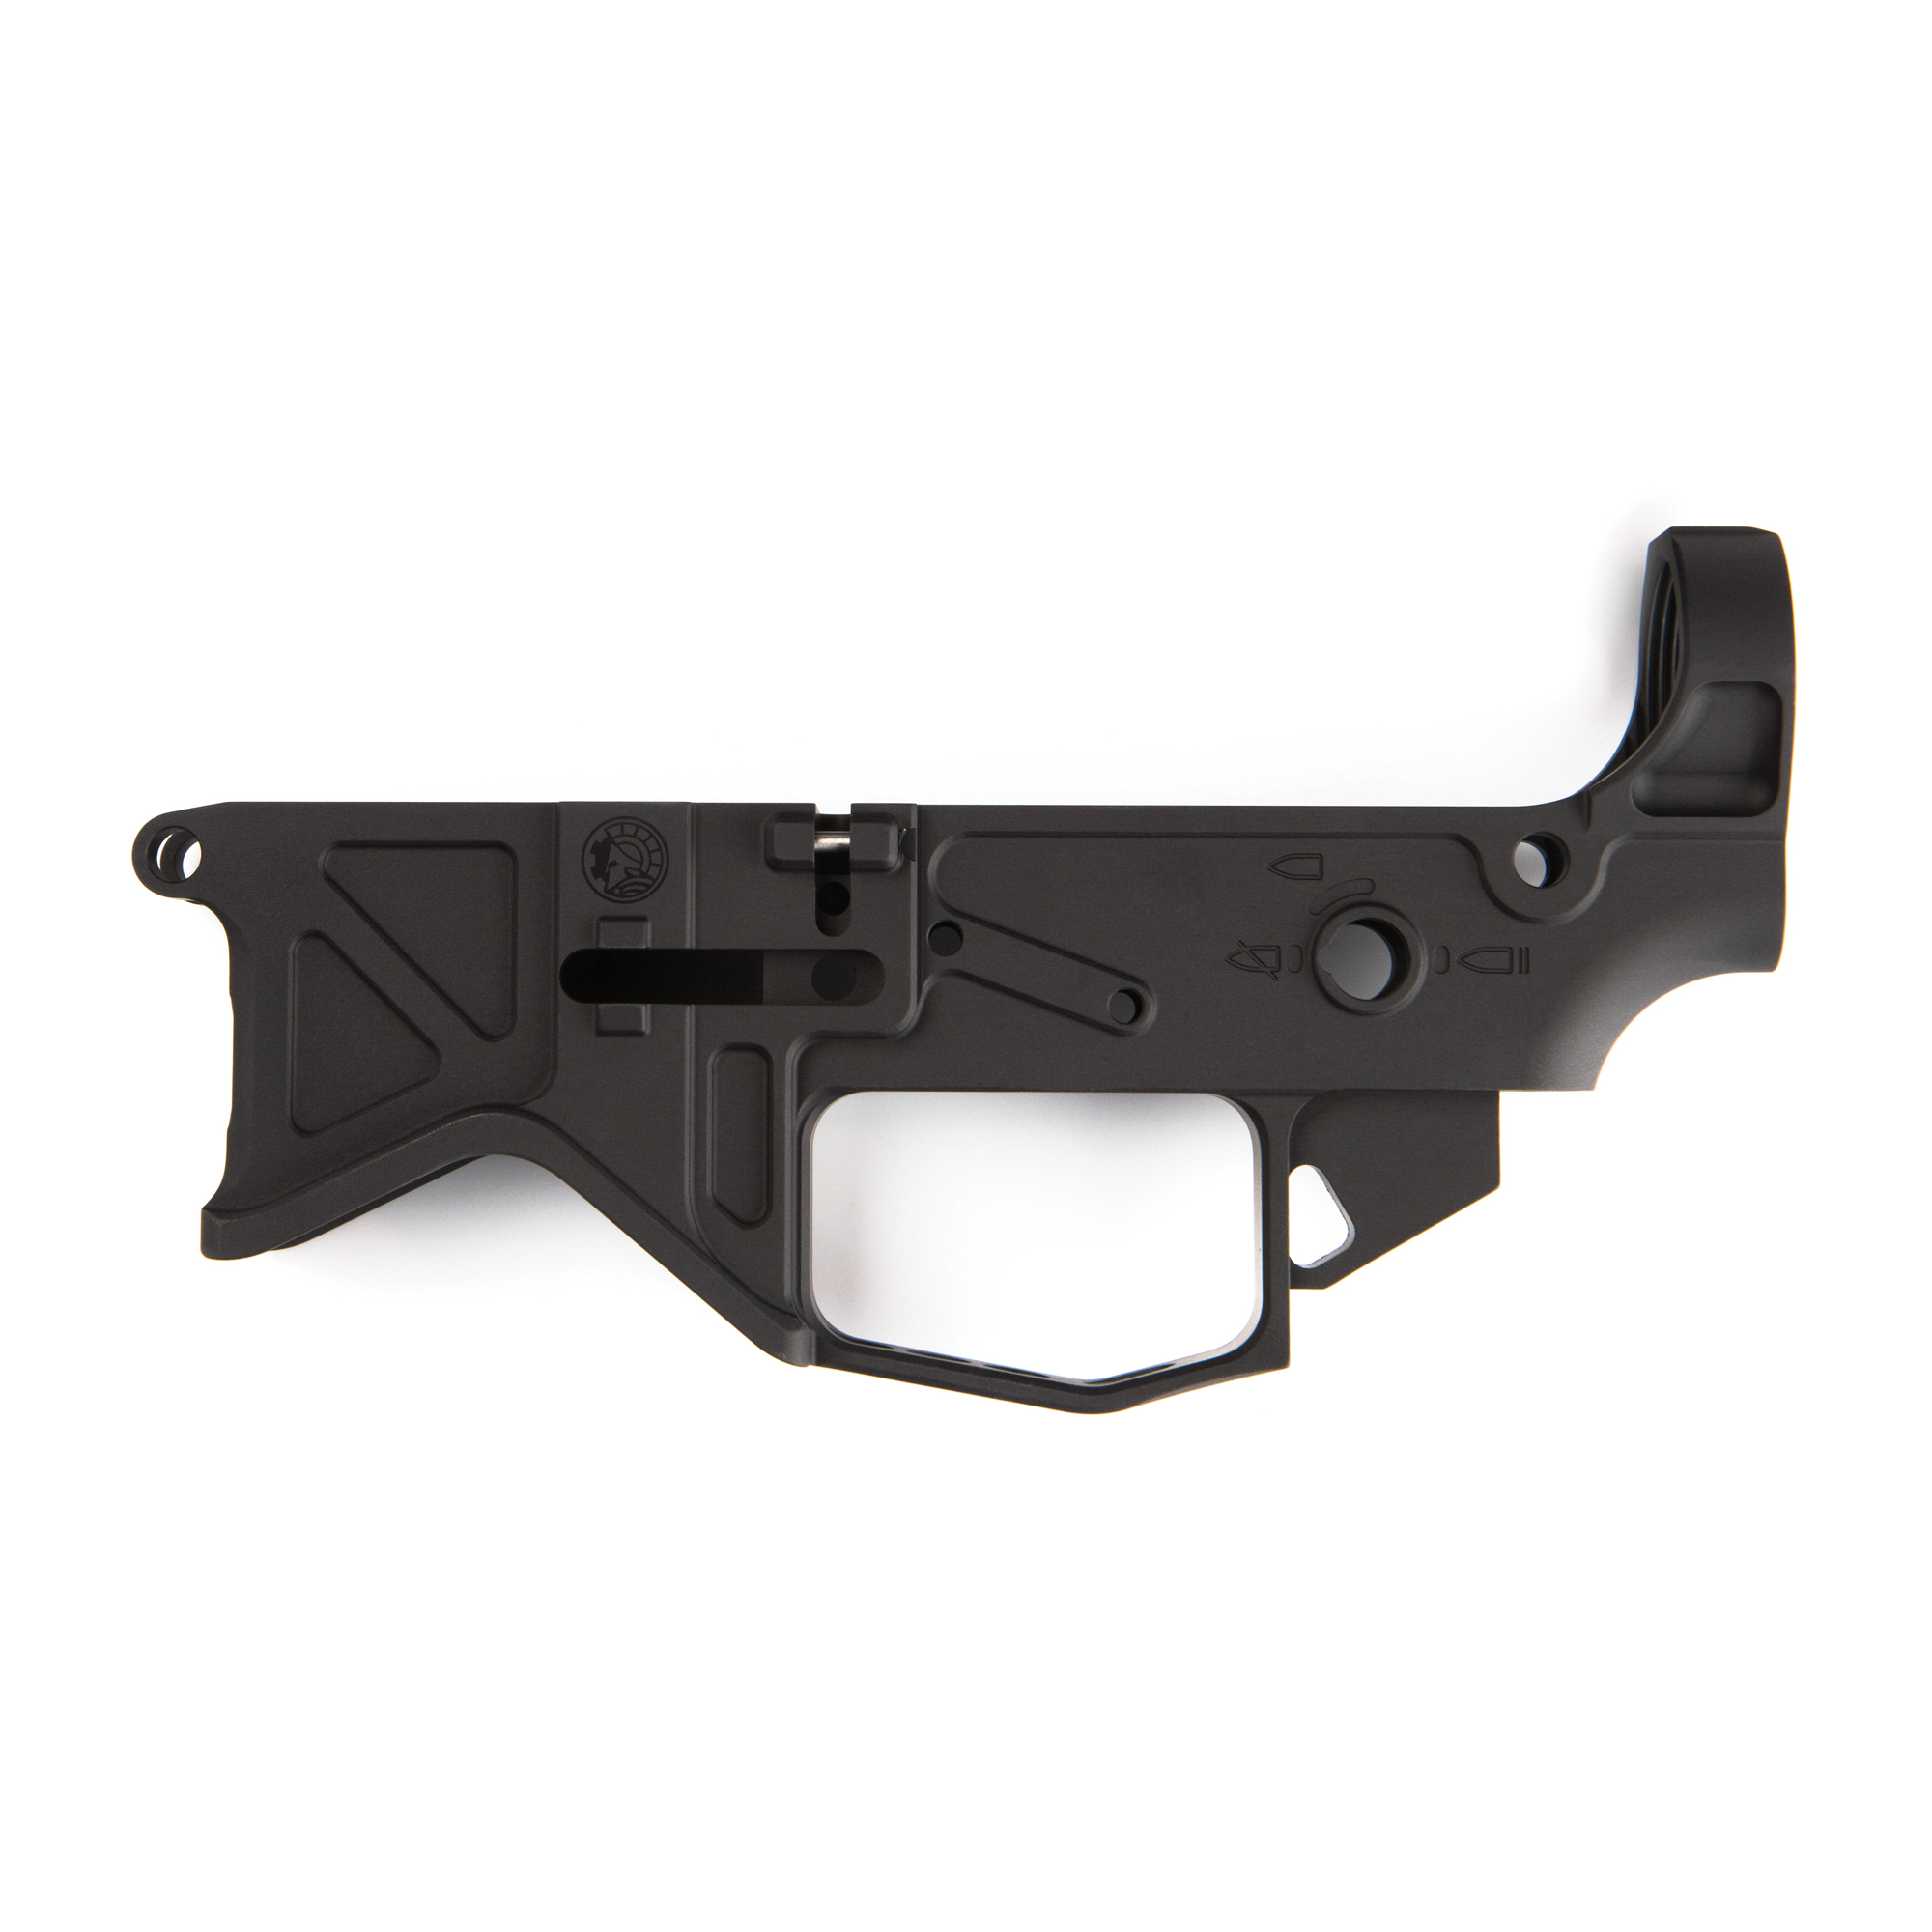 Not all billet lower receivers are created equal. Battle Arms Development set out to create the best lightweight lower receiver on the market.